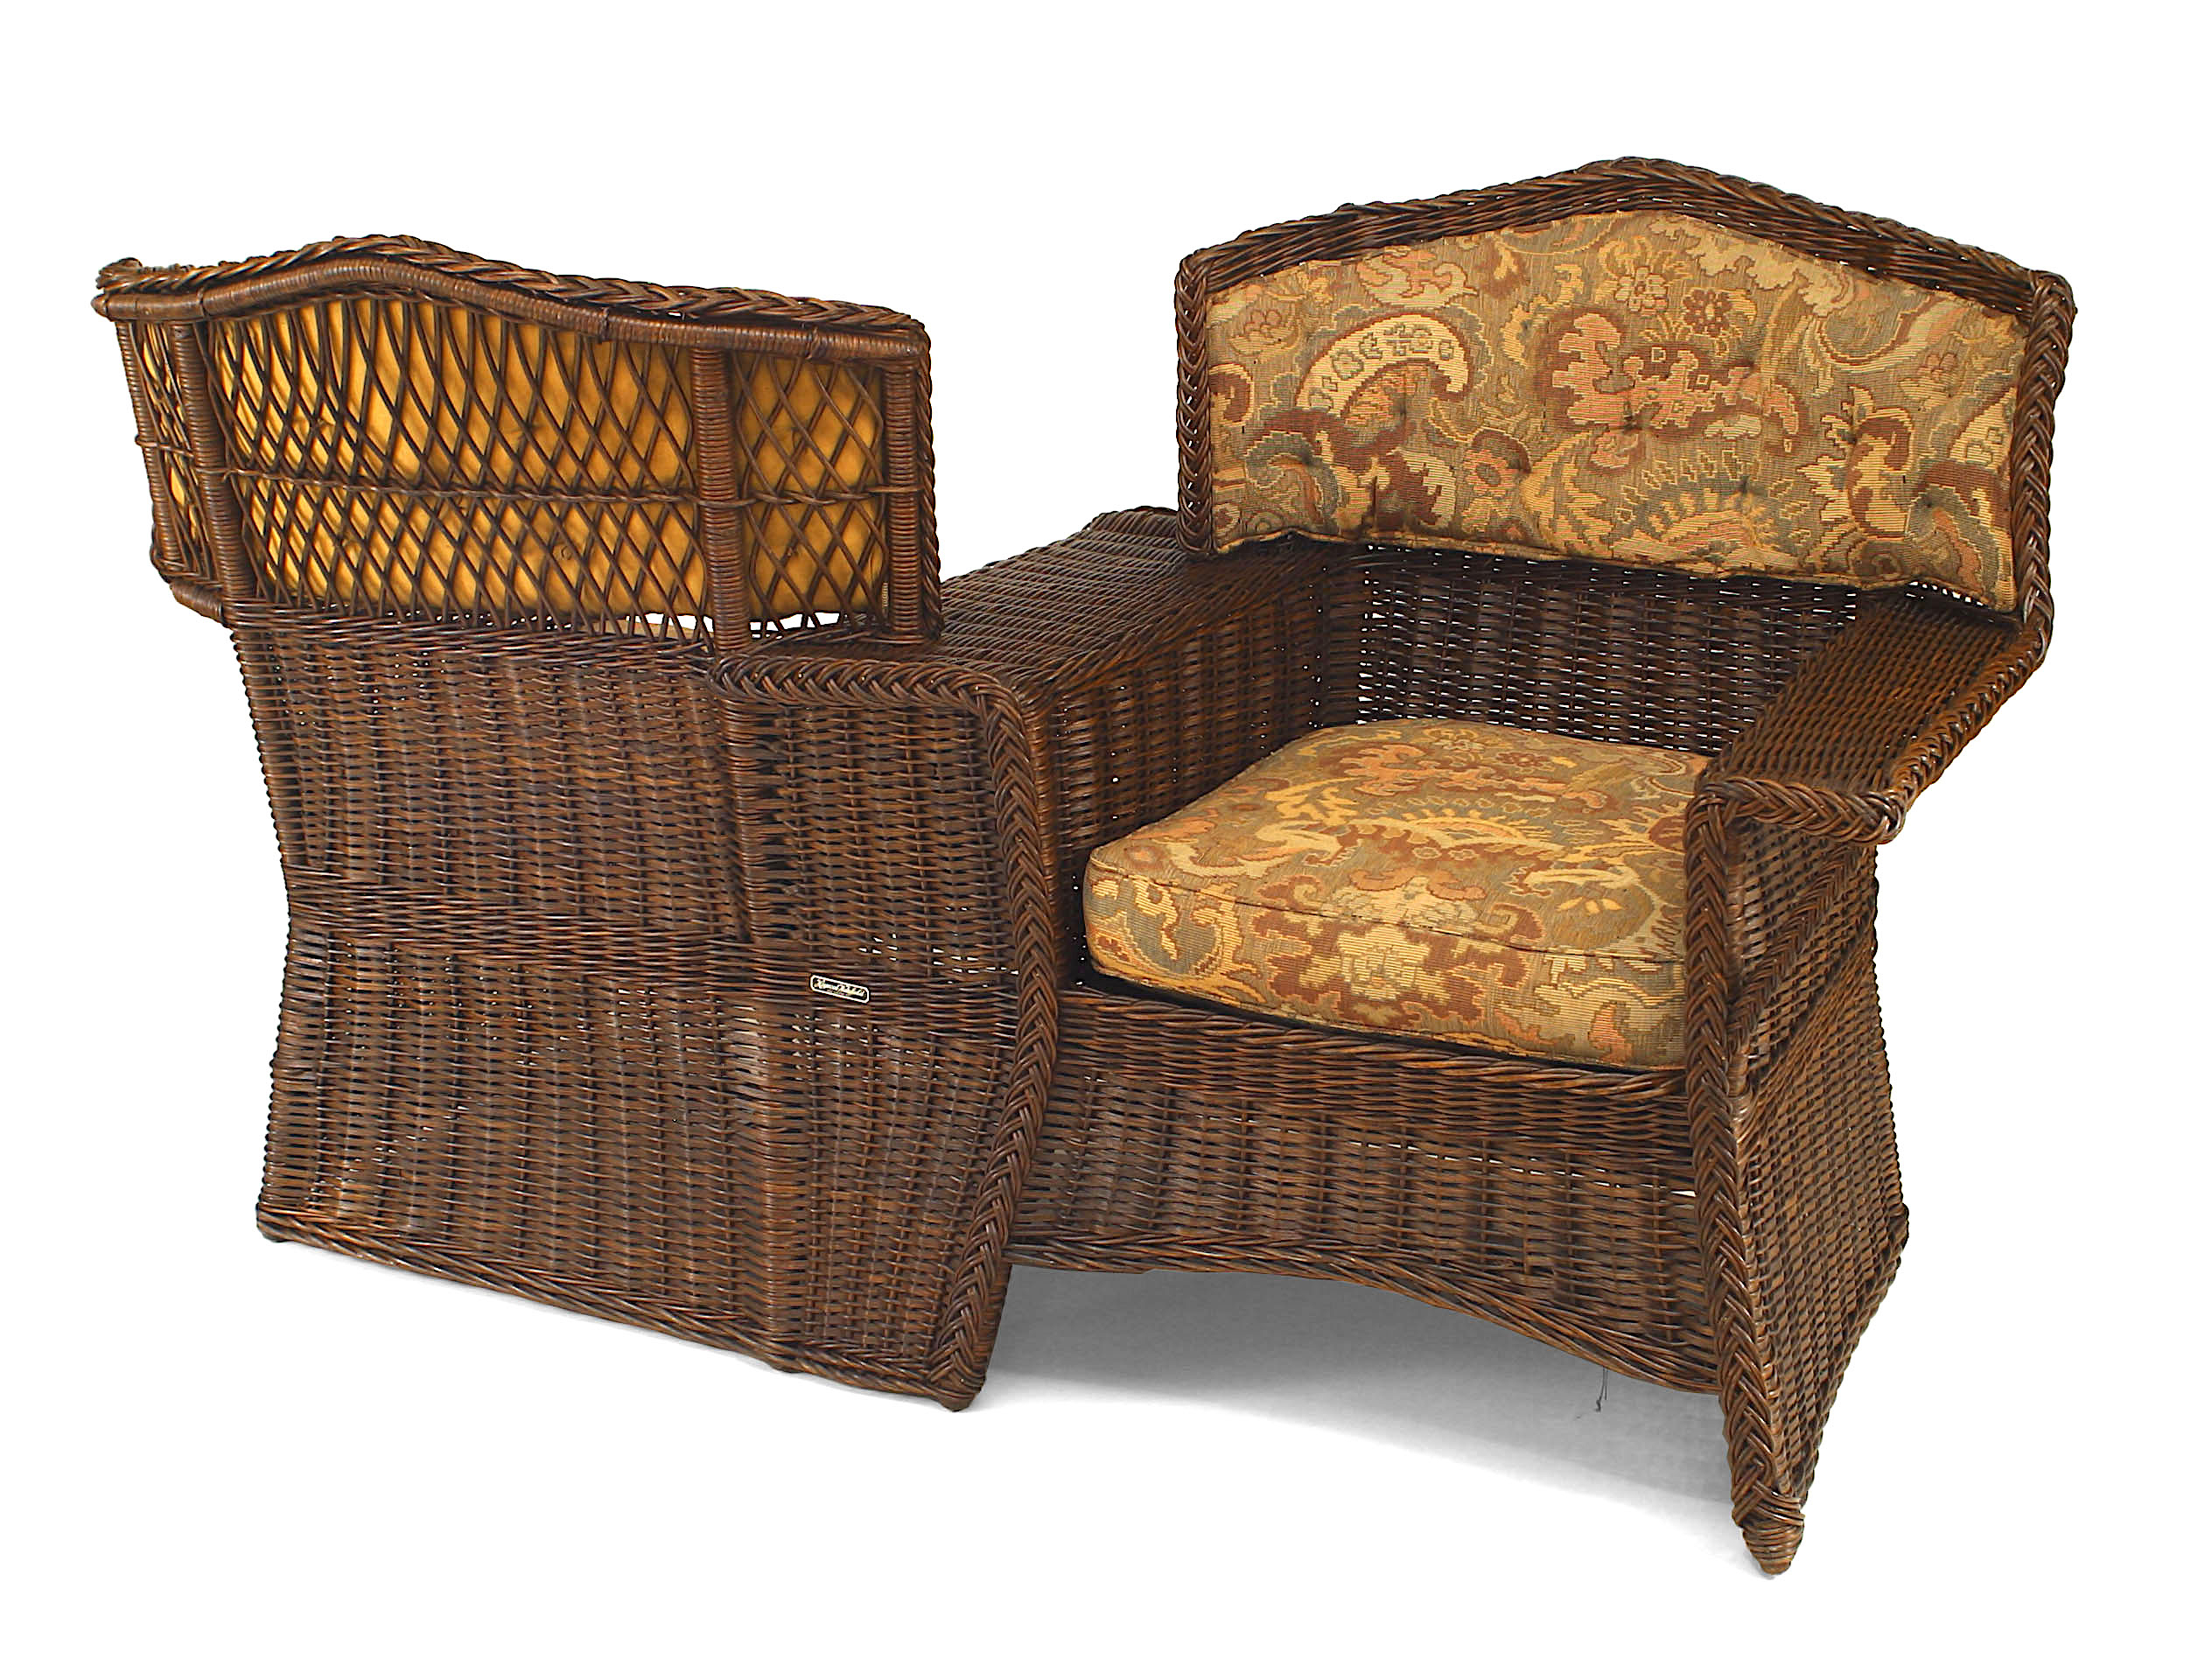 American Victorian Wicker Tete A Tete Pertaining To Wicker Tete A Tete Benches (View 13 of 25)